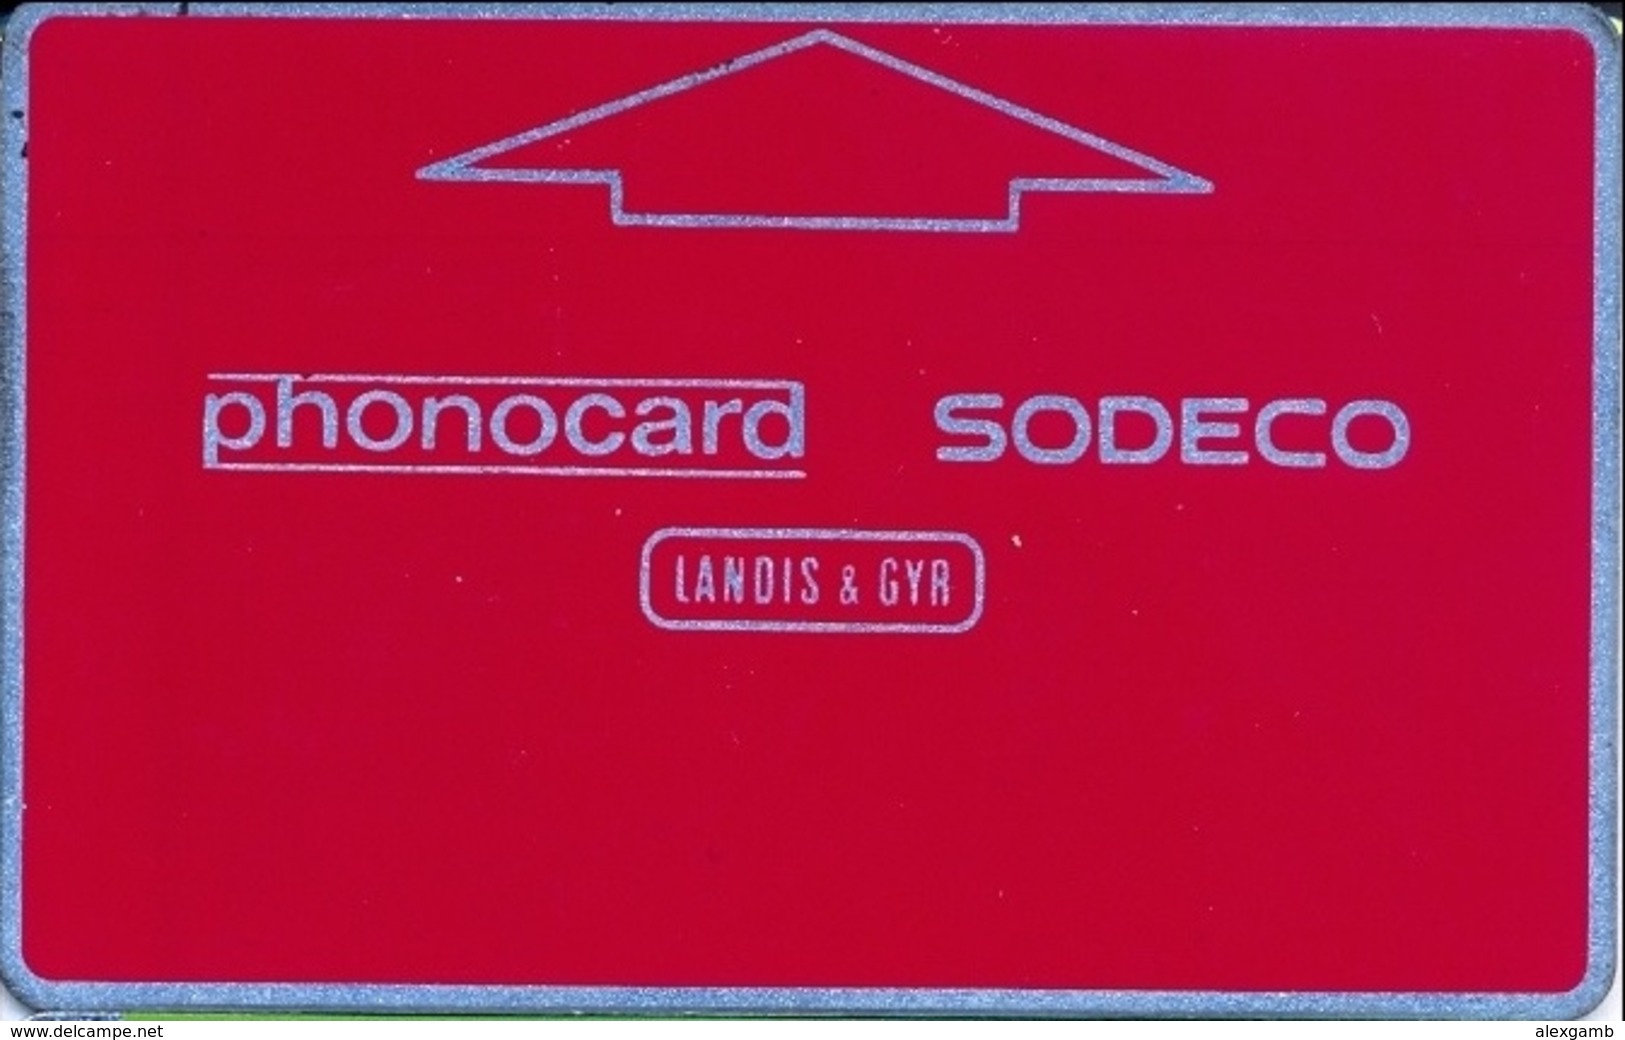 TEST CARD  LANDIS & GYR SODECO For NETHERLANDS Ctrl 684340 USED (+/- 30 From 100) DARK-RED 100u STRUCTURE 11 VERY RARE - Test & Dienst